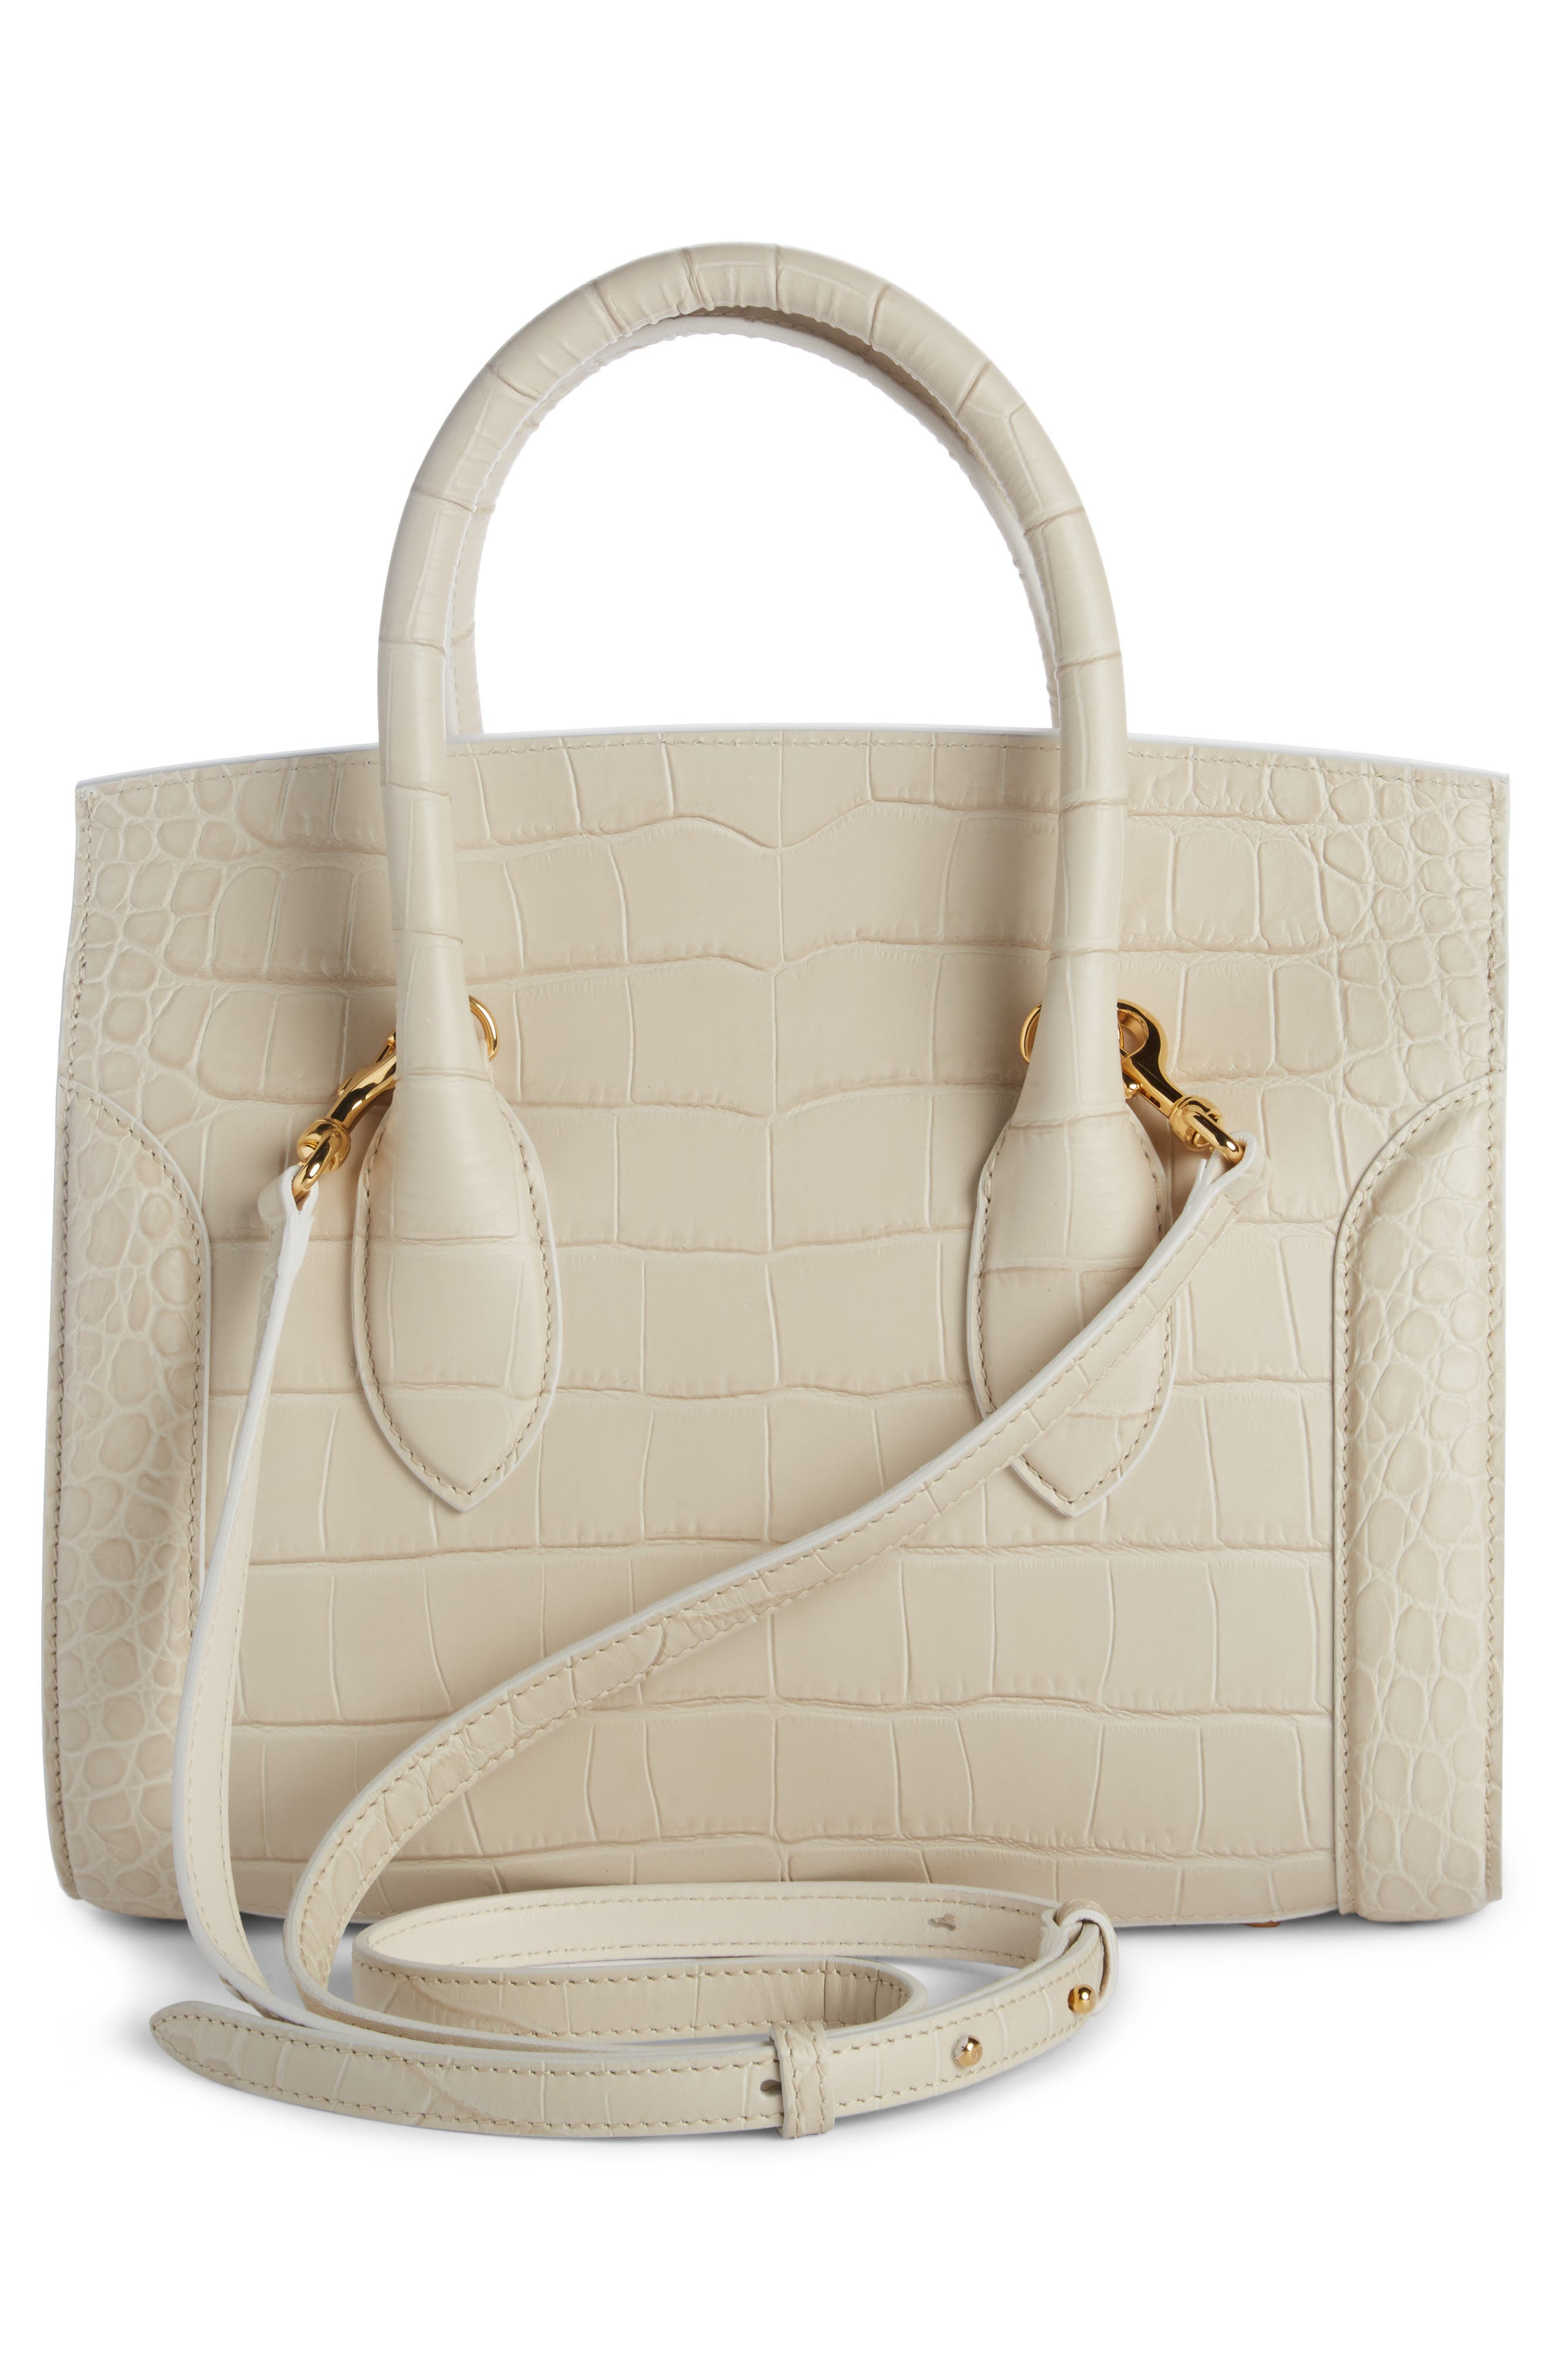 Heroine 30 Leather Satchel,                             Alternate thumbnail 2, color,                             White Bone